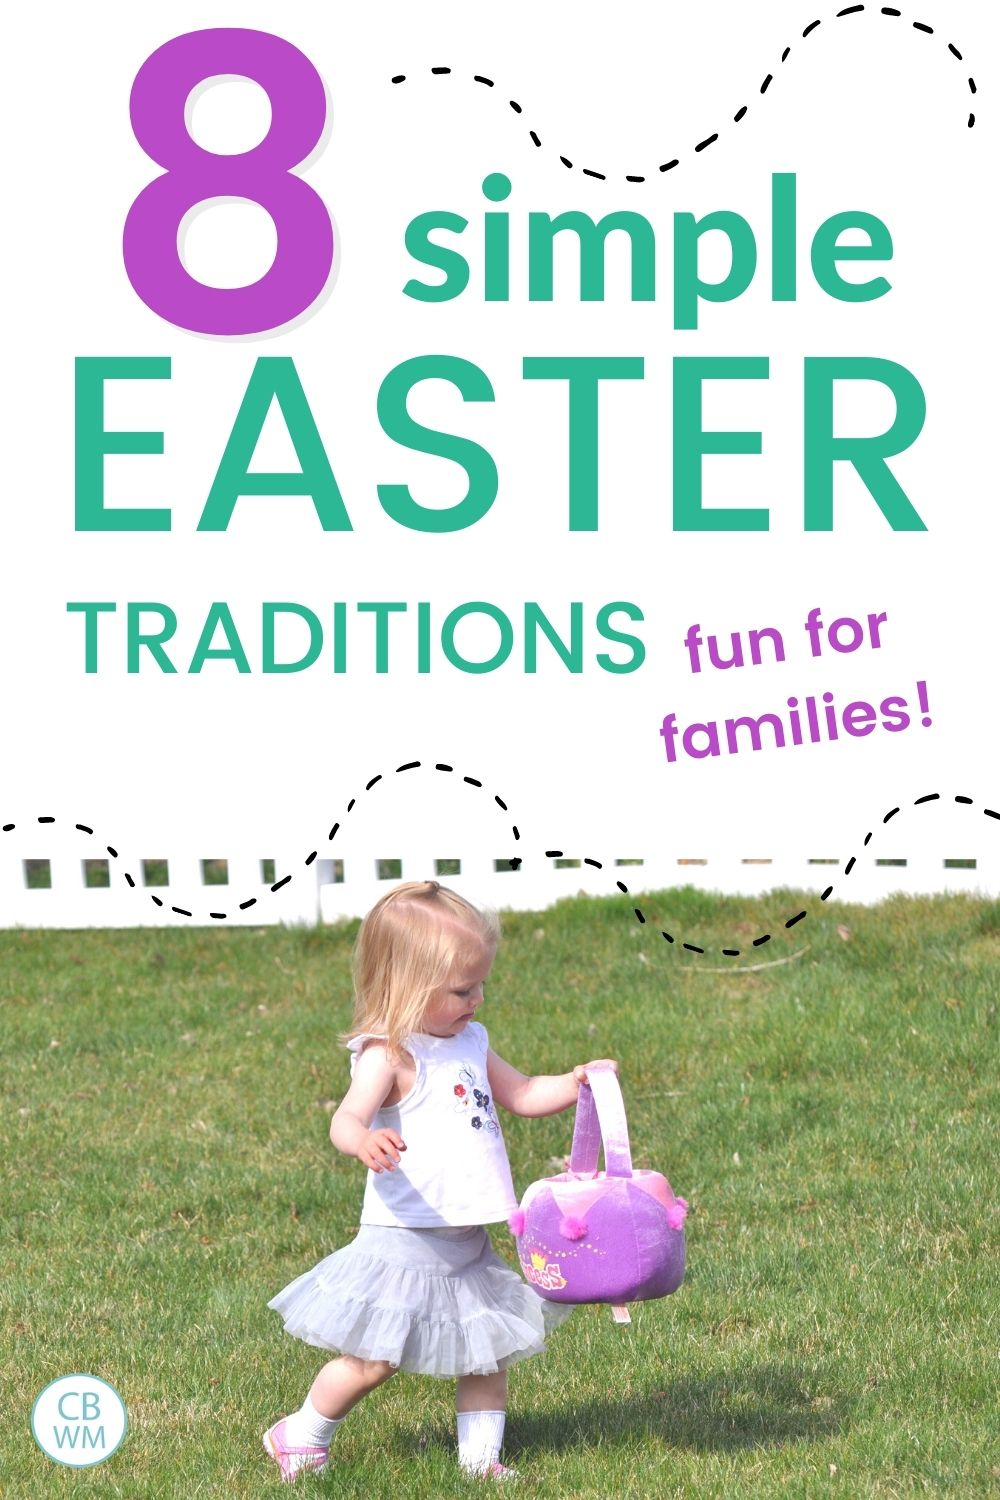 8 simple Easter traditions